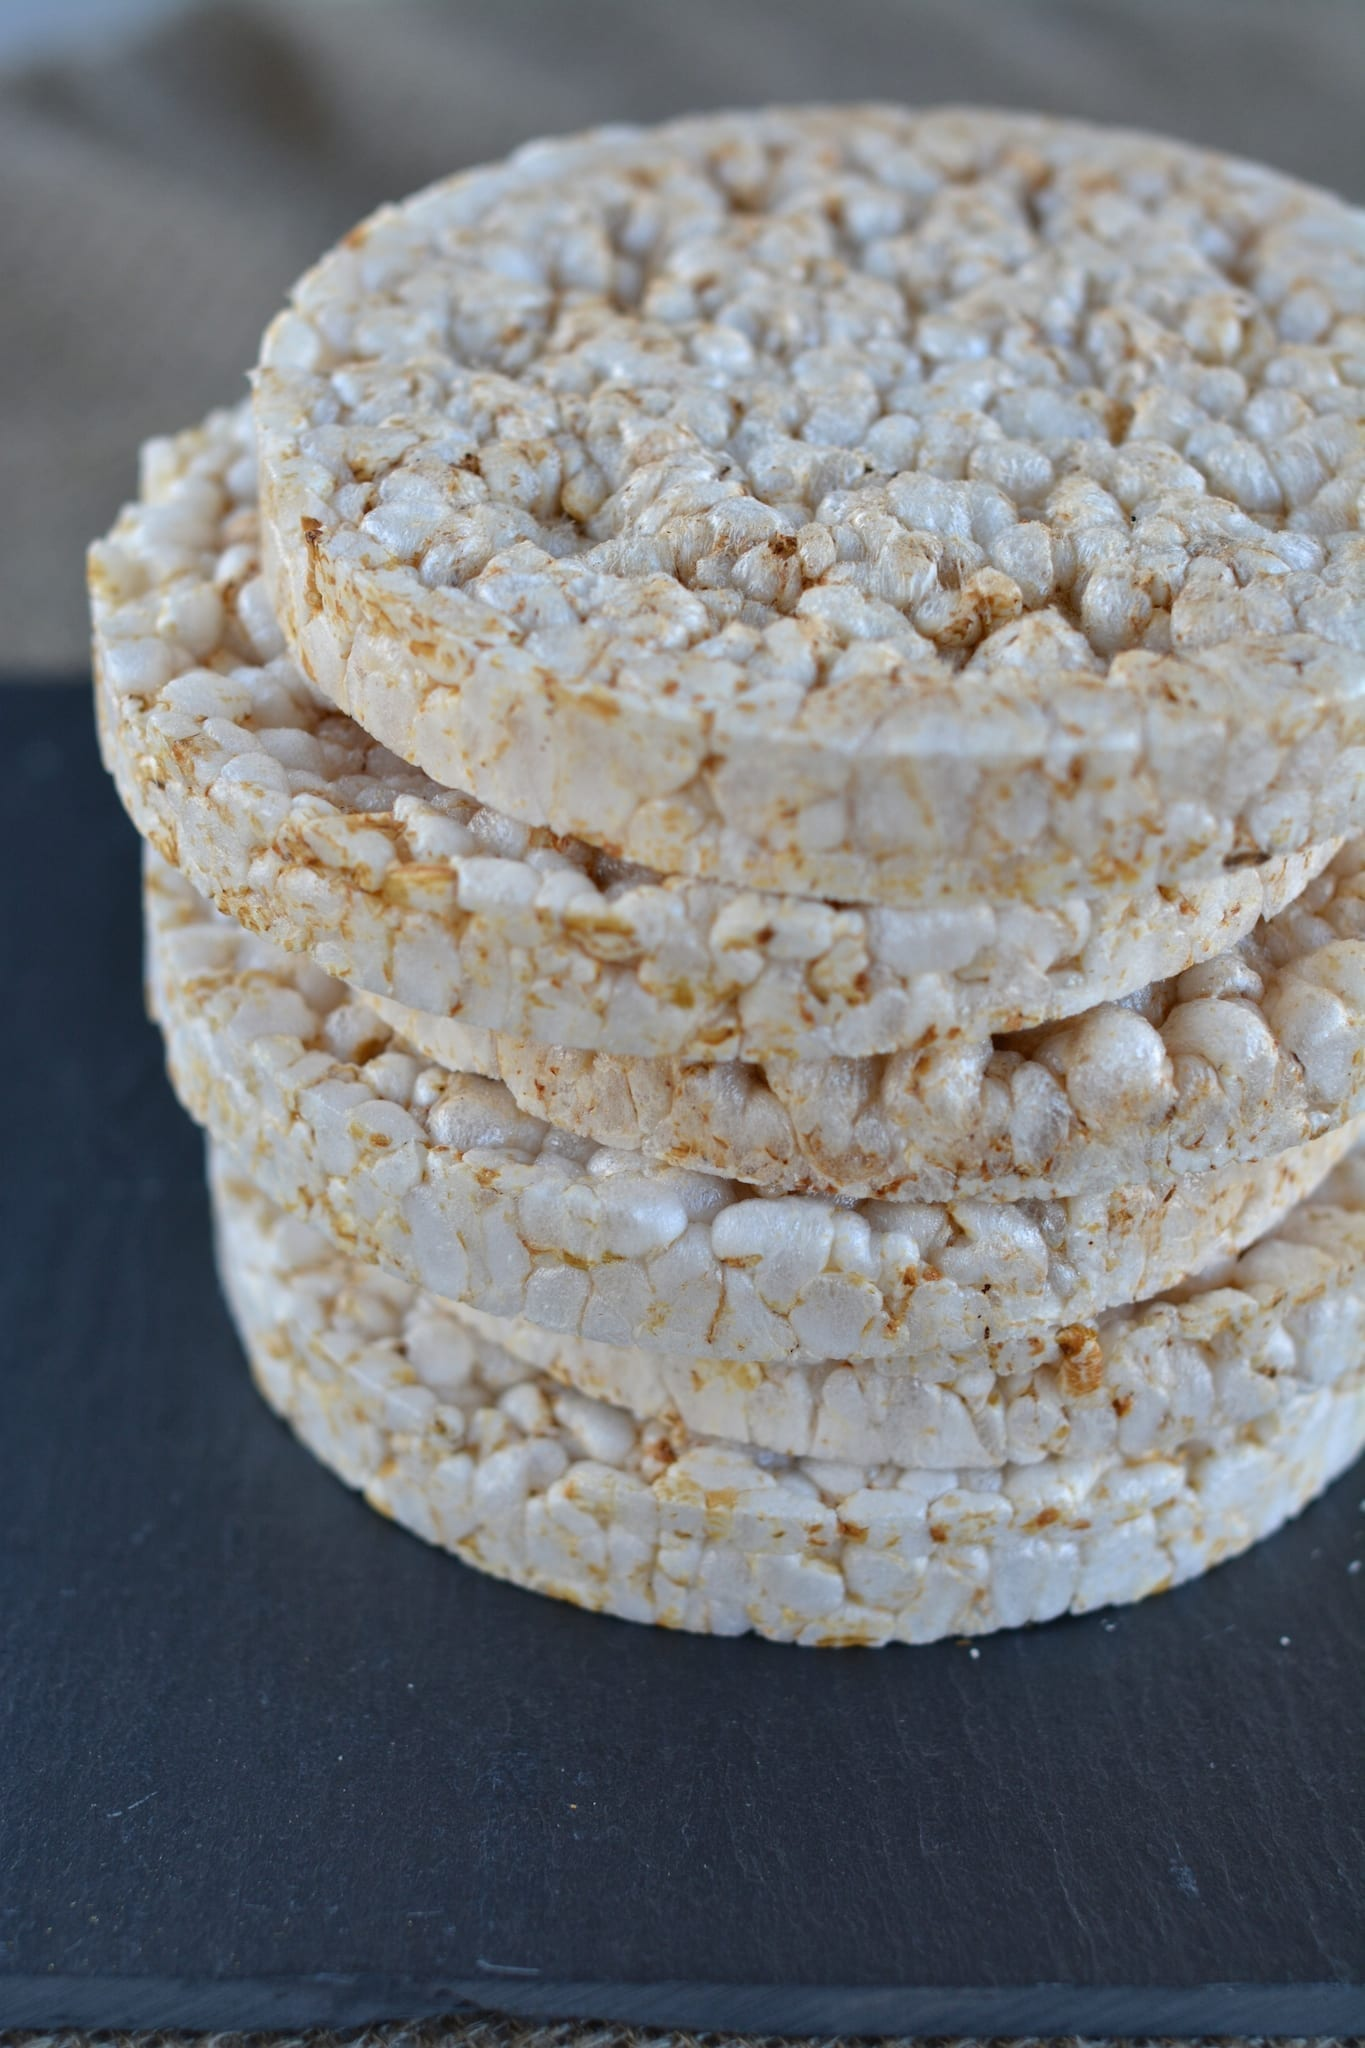 Arsenic in rice. Brown rice cakes.